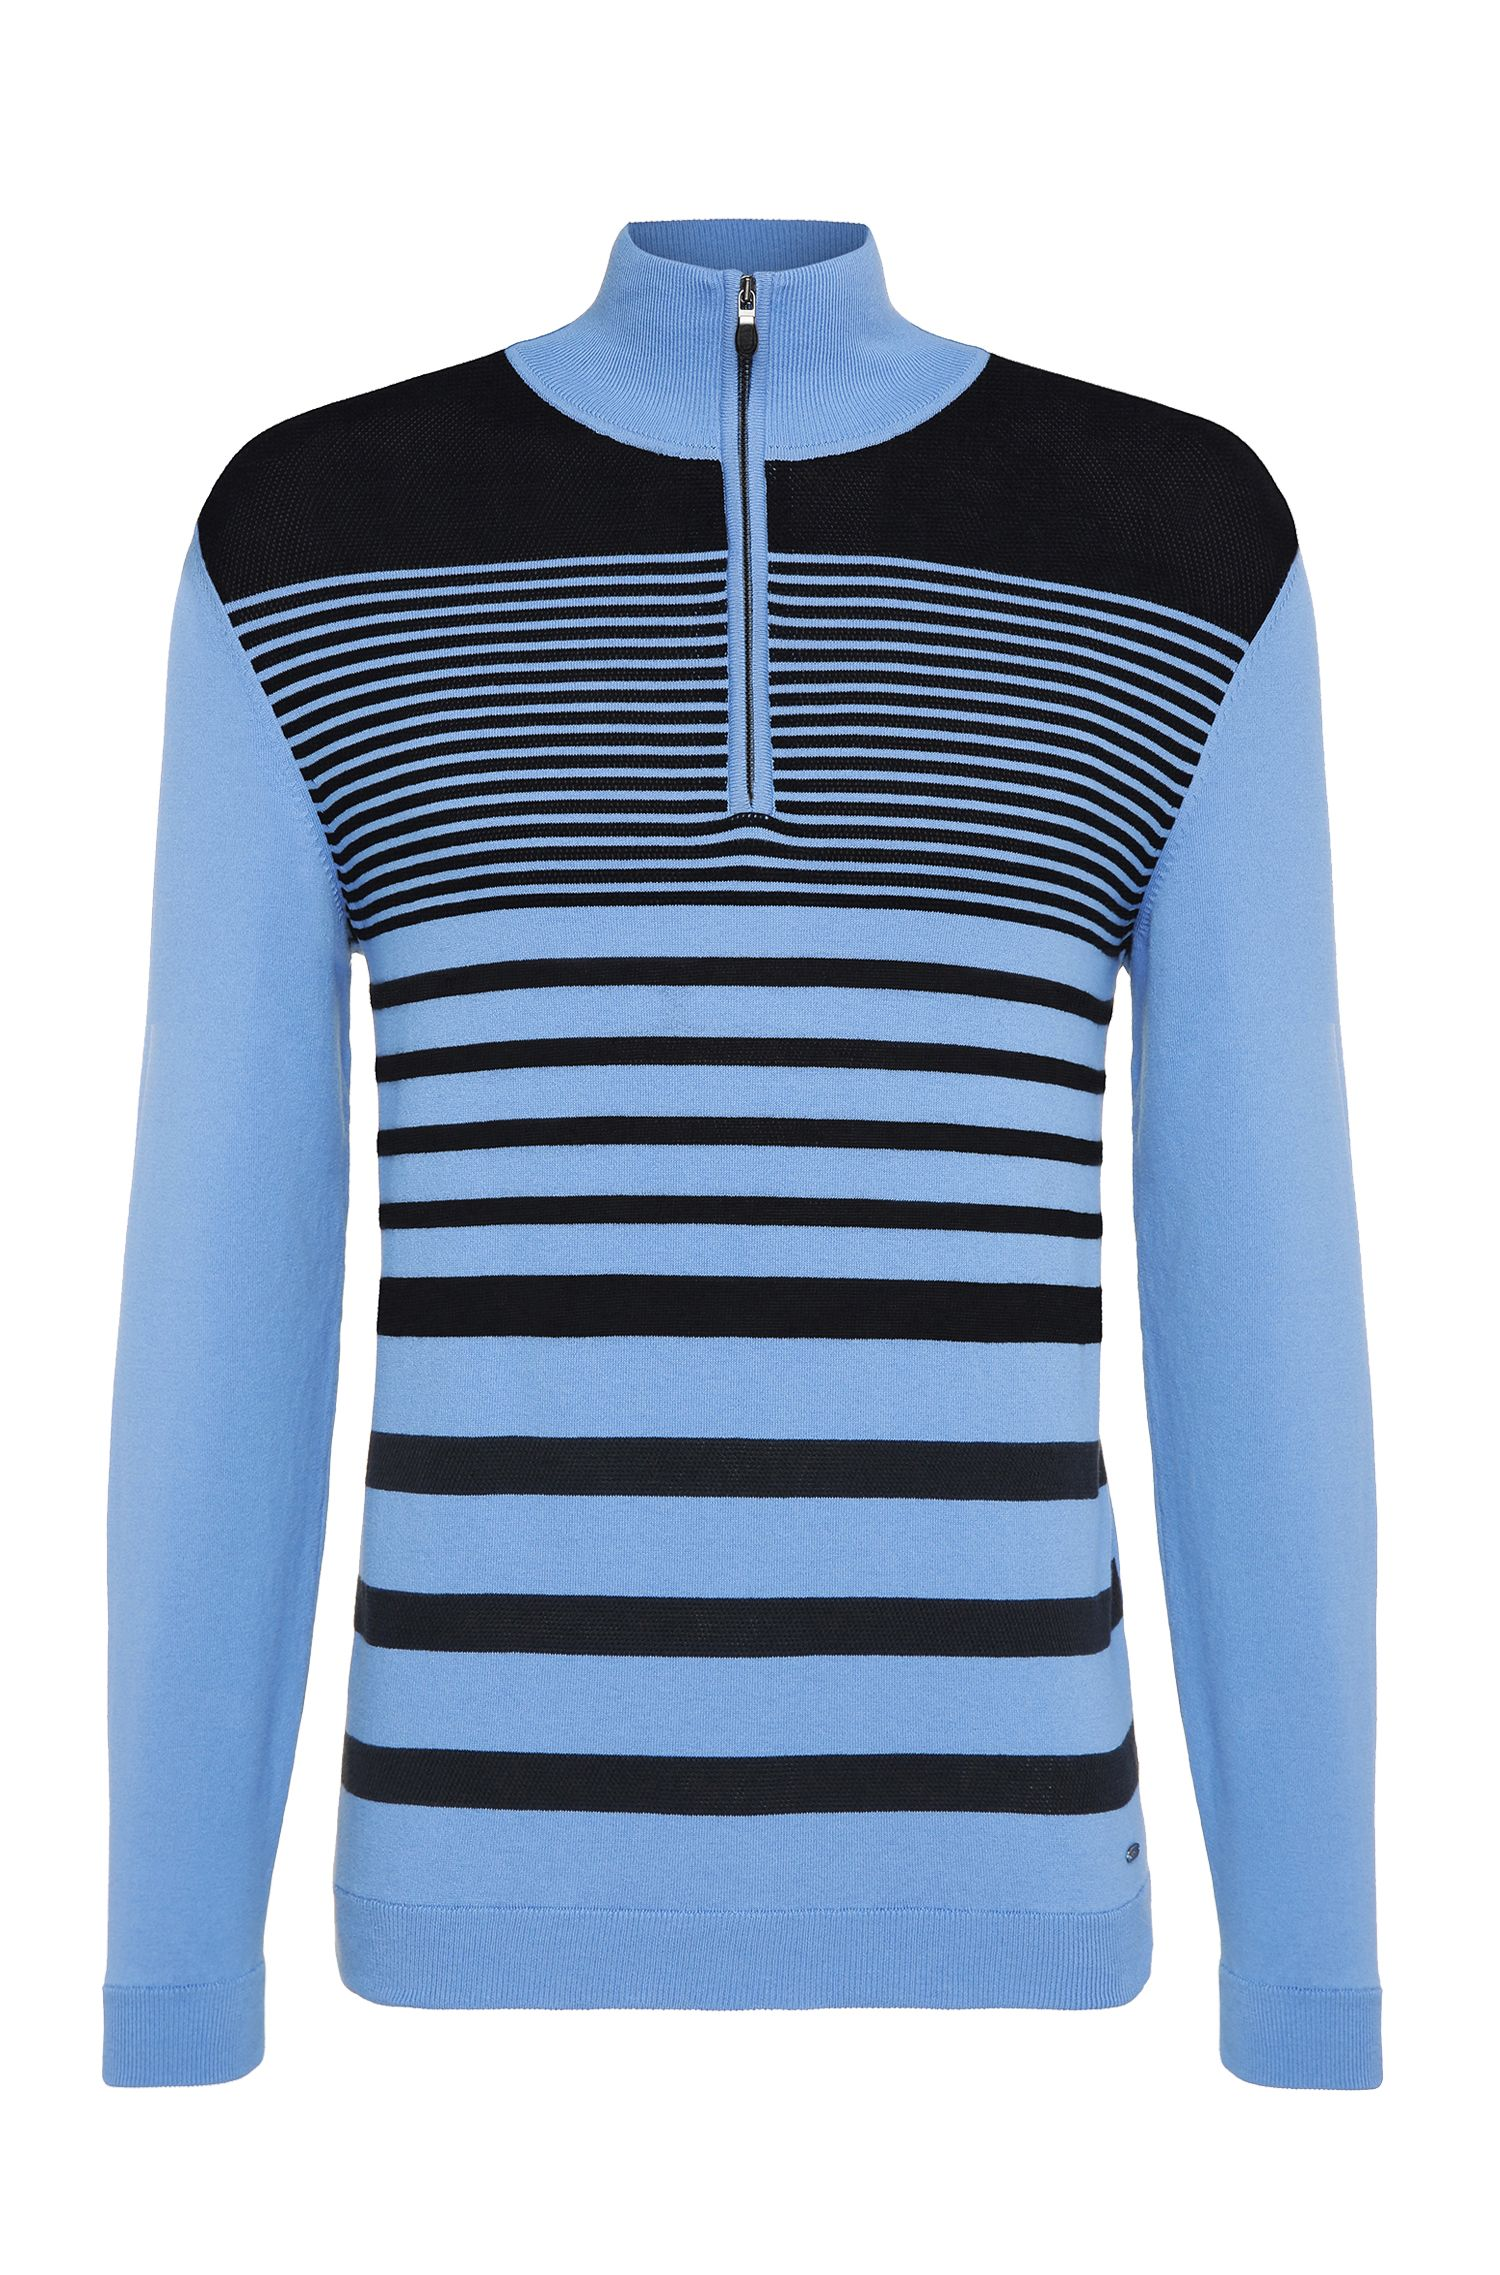 'Zoco' | Slim Fit, Striped Stretch Cotton Half-Zip Sweater